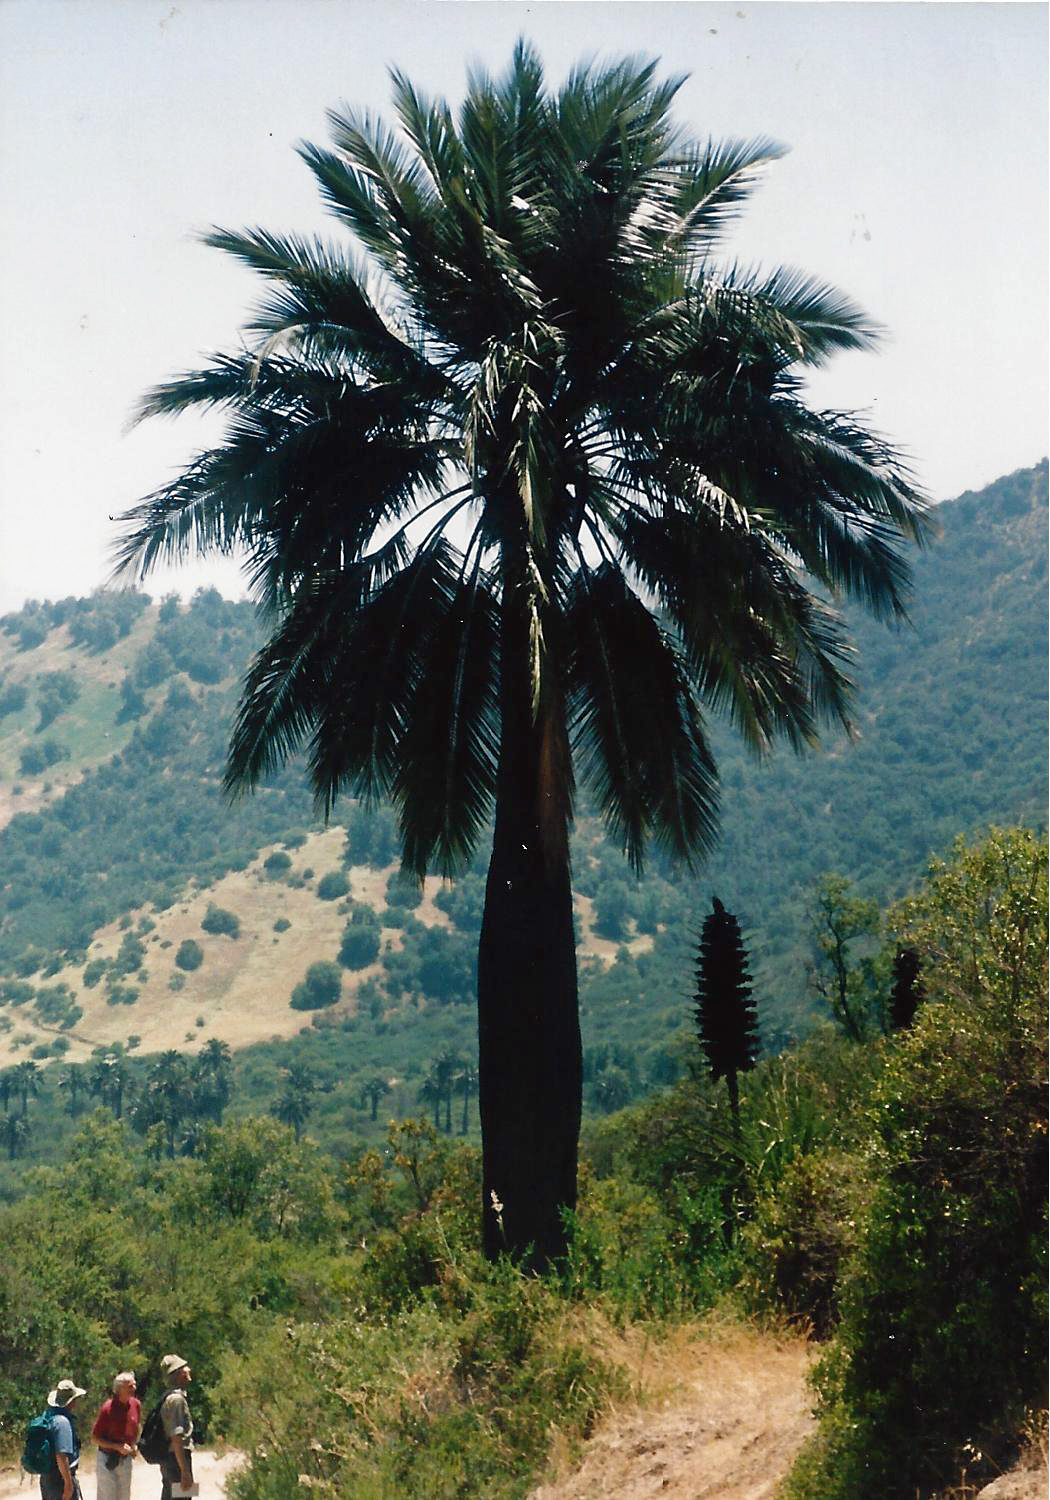 Image-12-Chile-Palm-and-Puya.-La-Campana-National-Park.-The-Wine-Palms-Jubaea-1.jpg